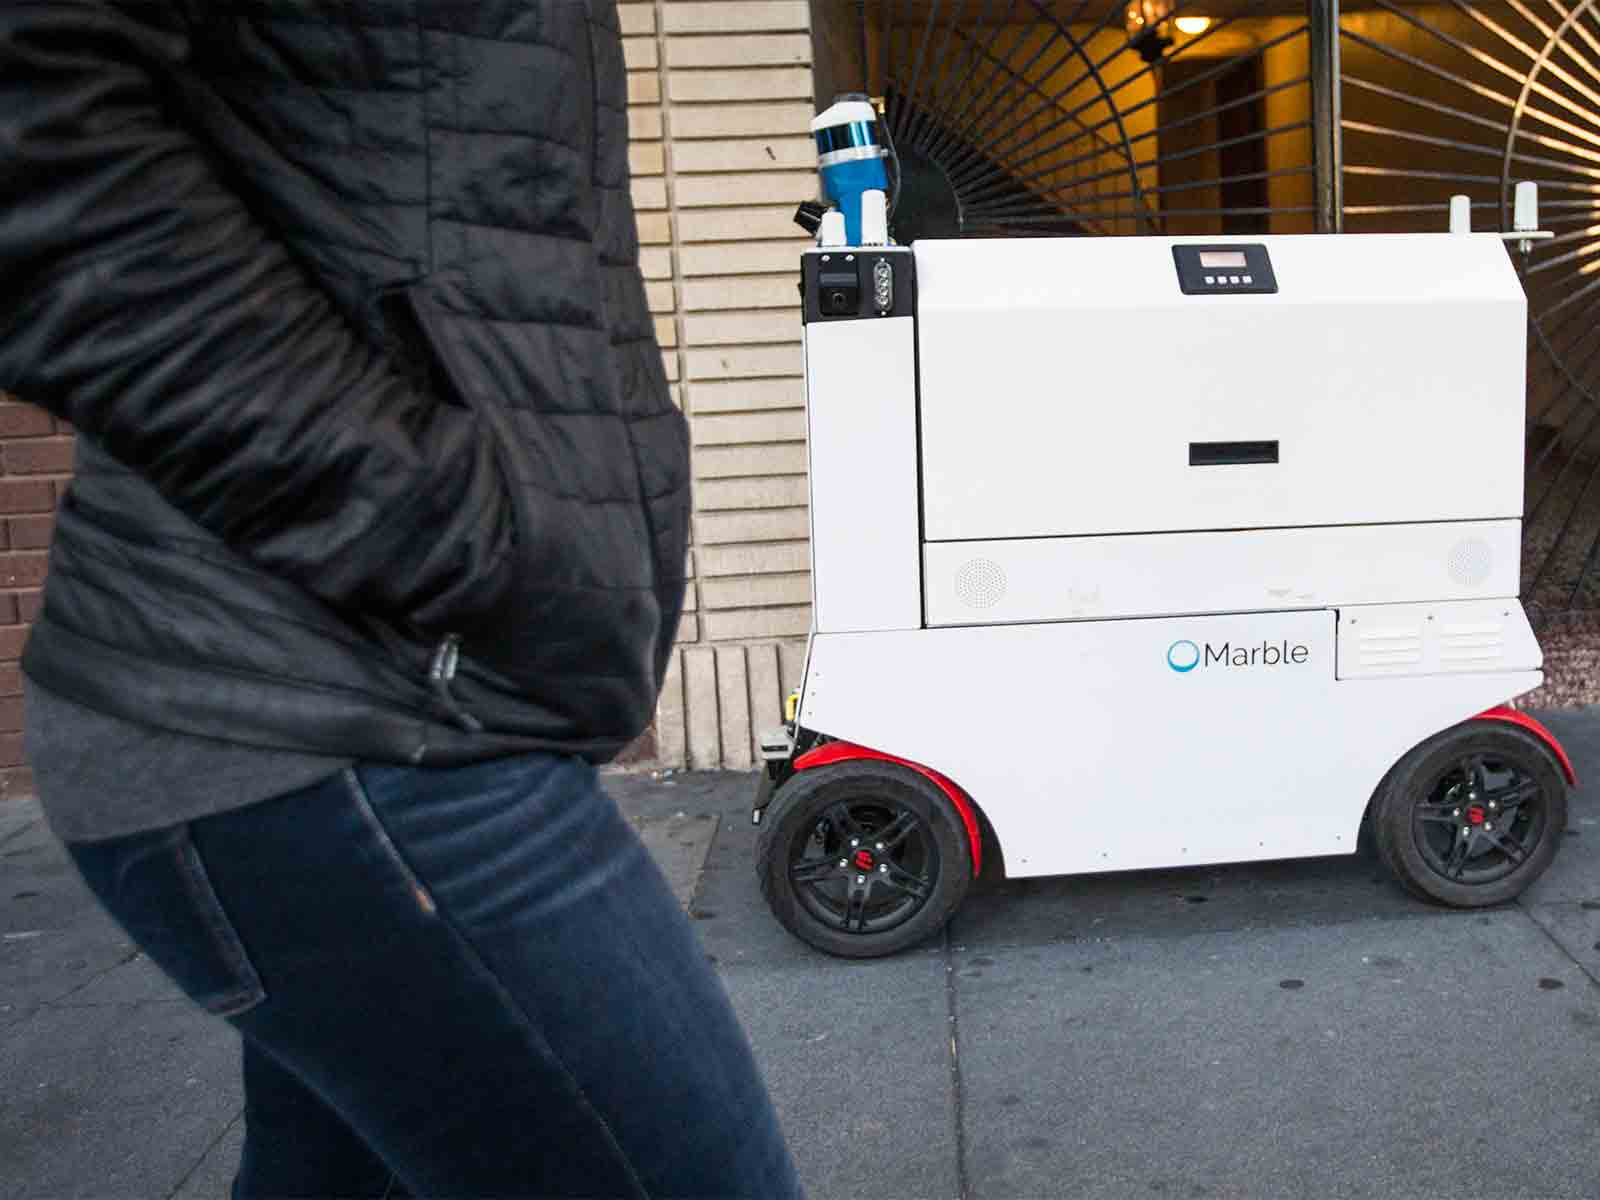 A Marble delivery robot rolls down Valencia Street in San Francisco's Mission District. (Jessica Christian/S.F. Examiner)